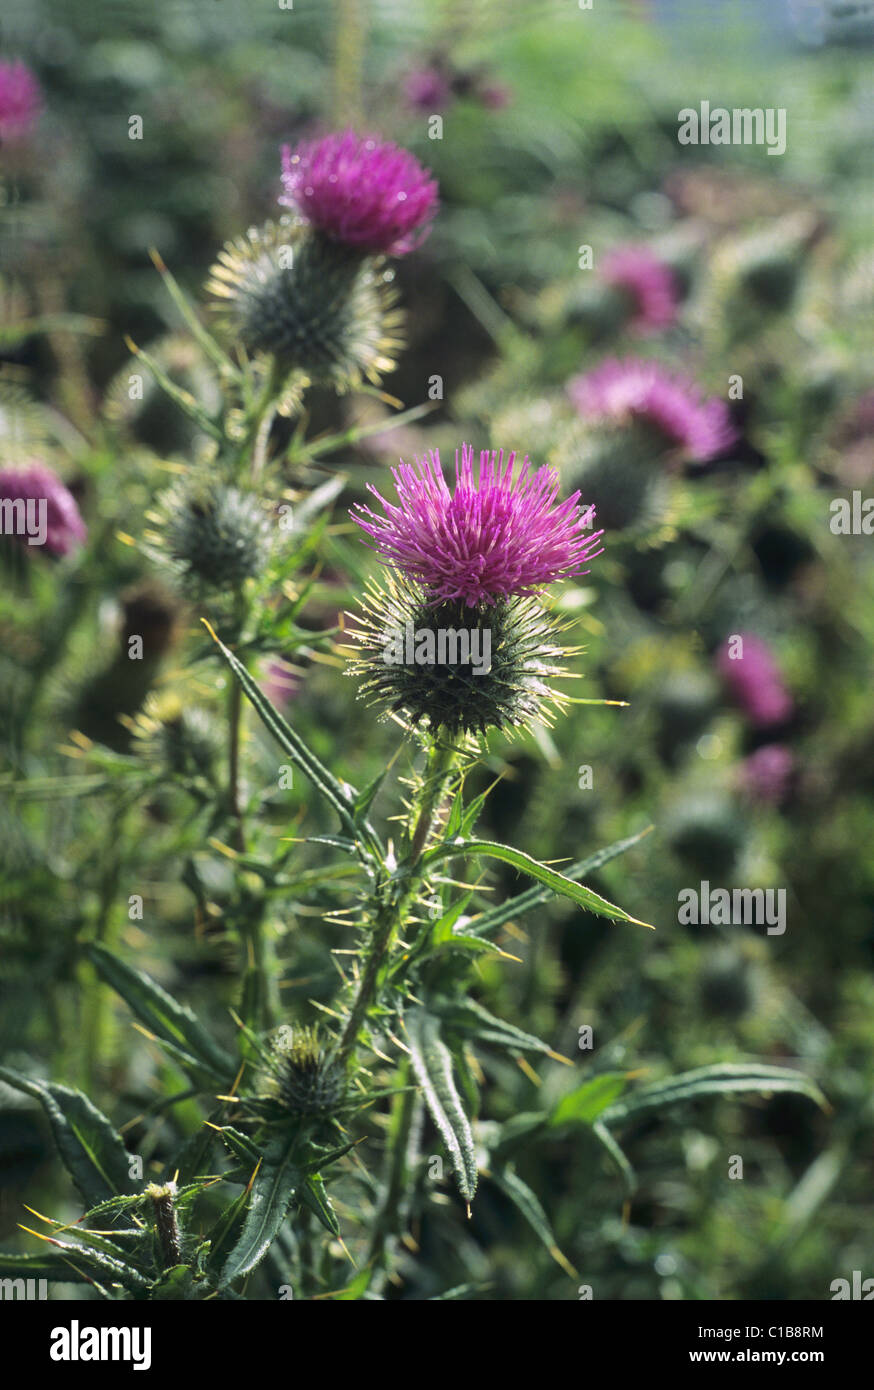 scottish thistle in full bloom growing wild stock photo royalty